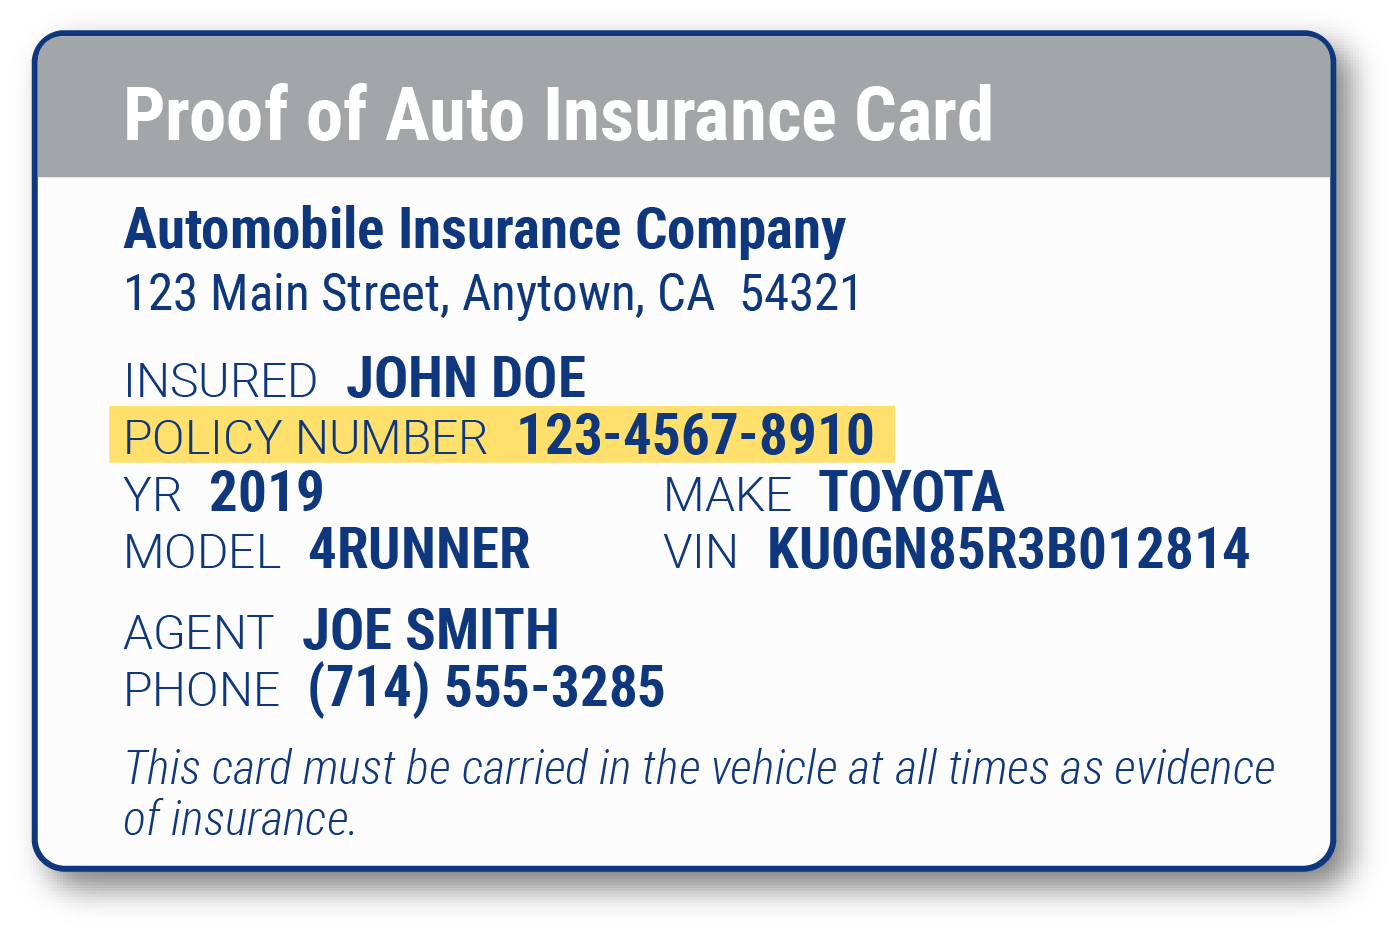 proof of insurance card with policy number